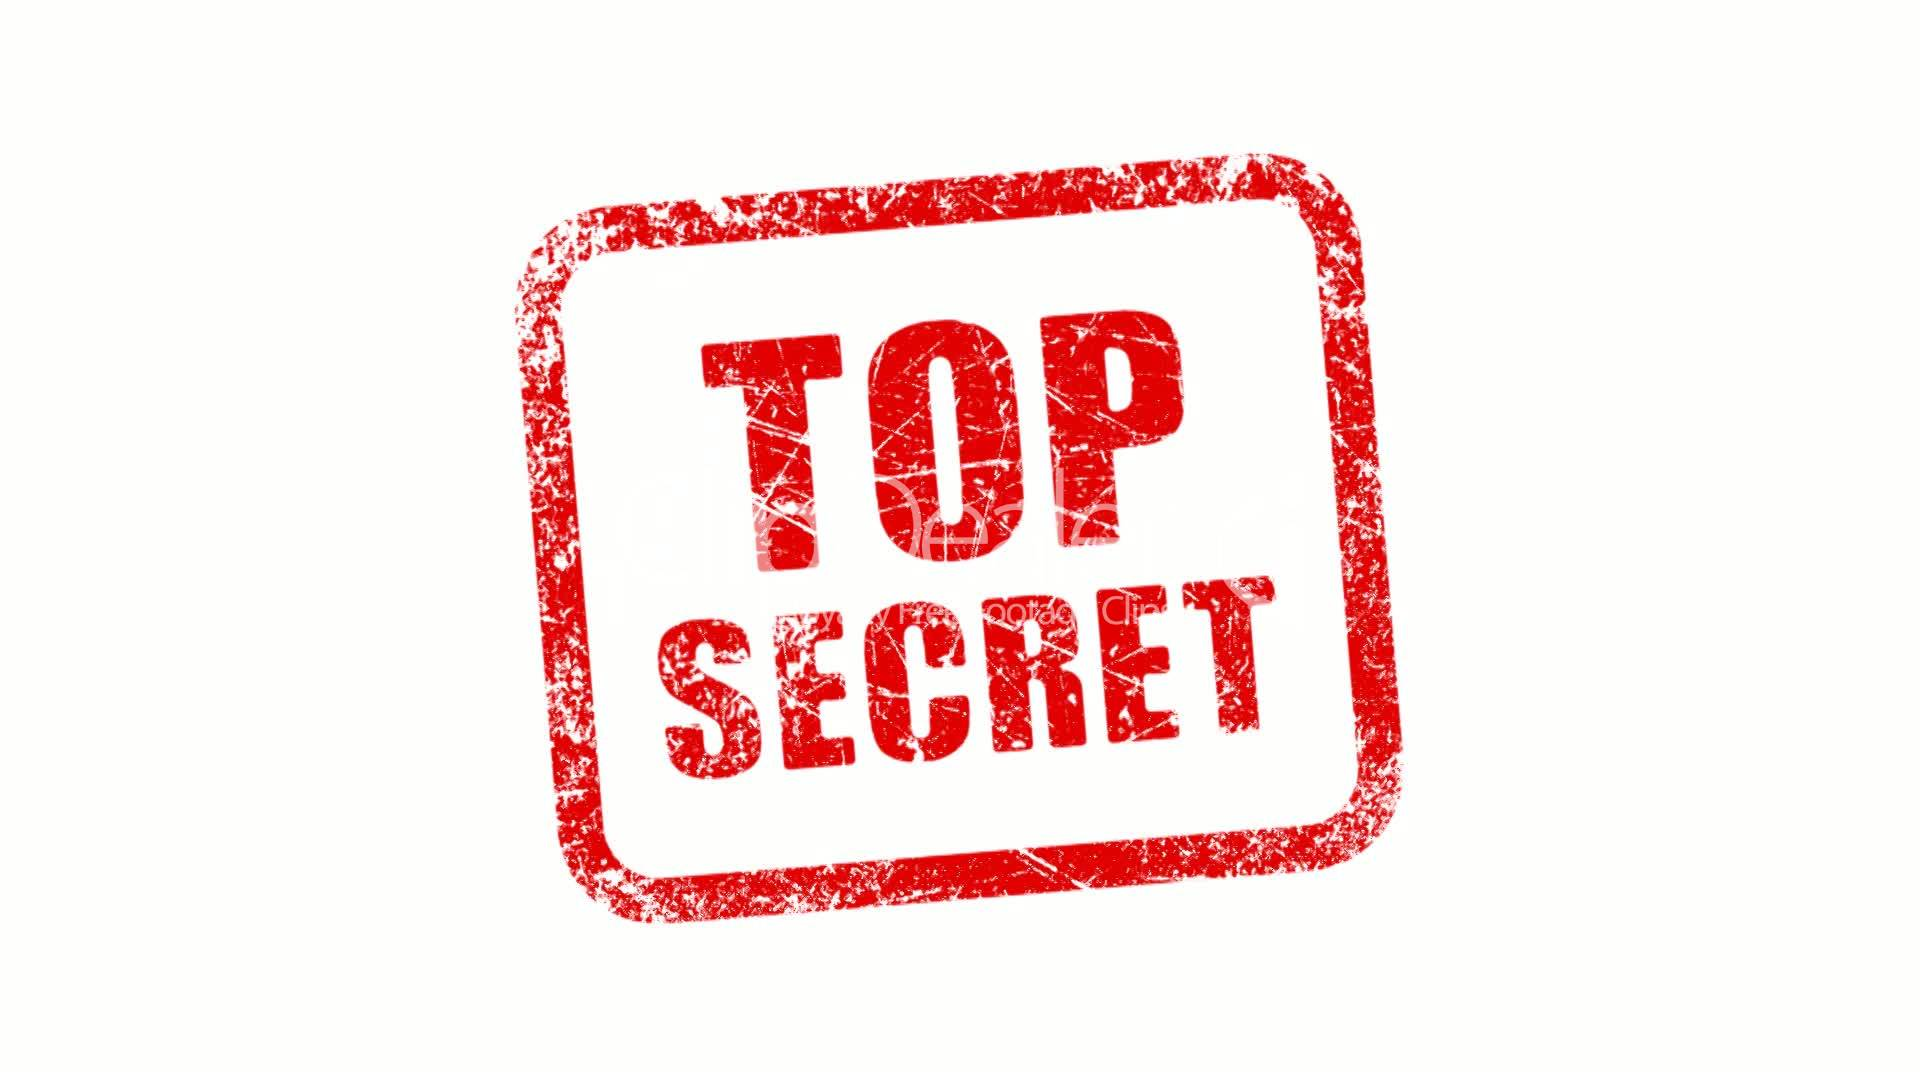 top secret Cosmic top secret do we really know each other based on incredible real-life  events, help t uncover the truth about her parents' work as spies during the.